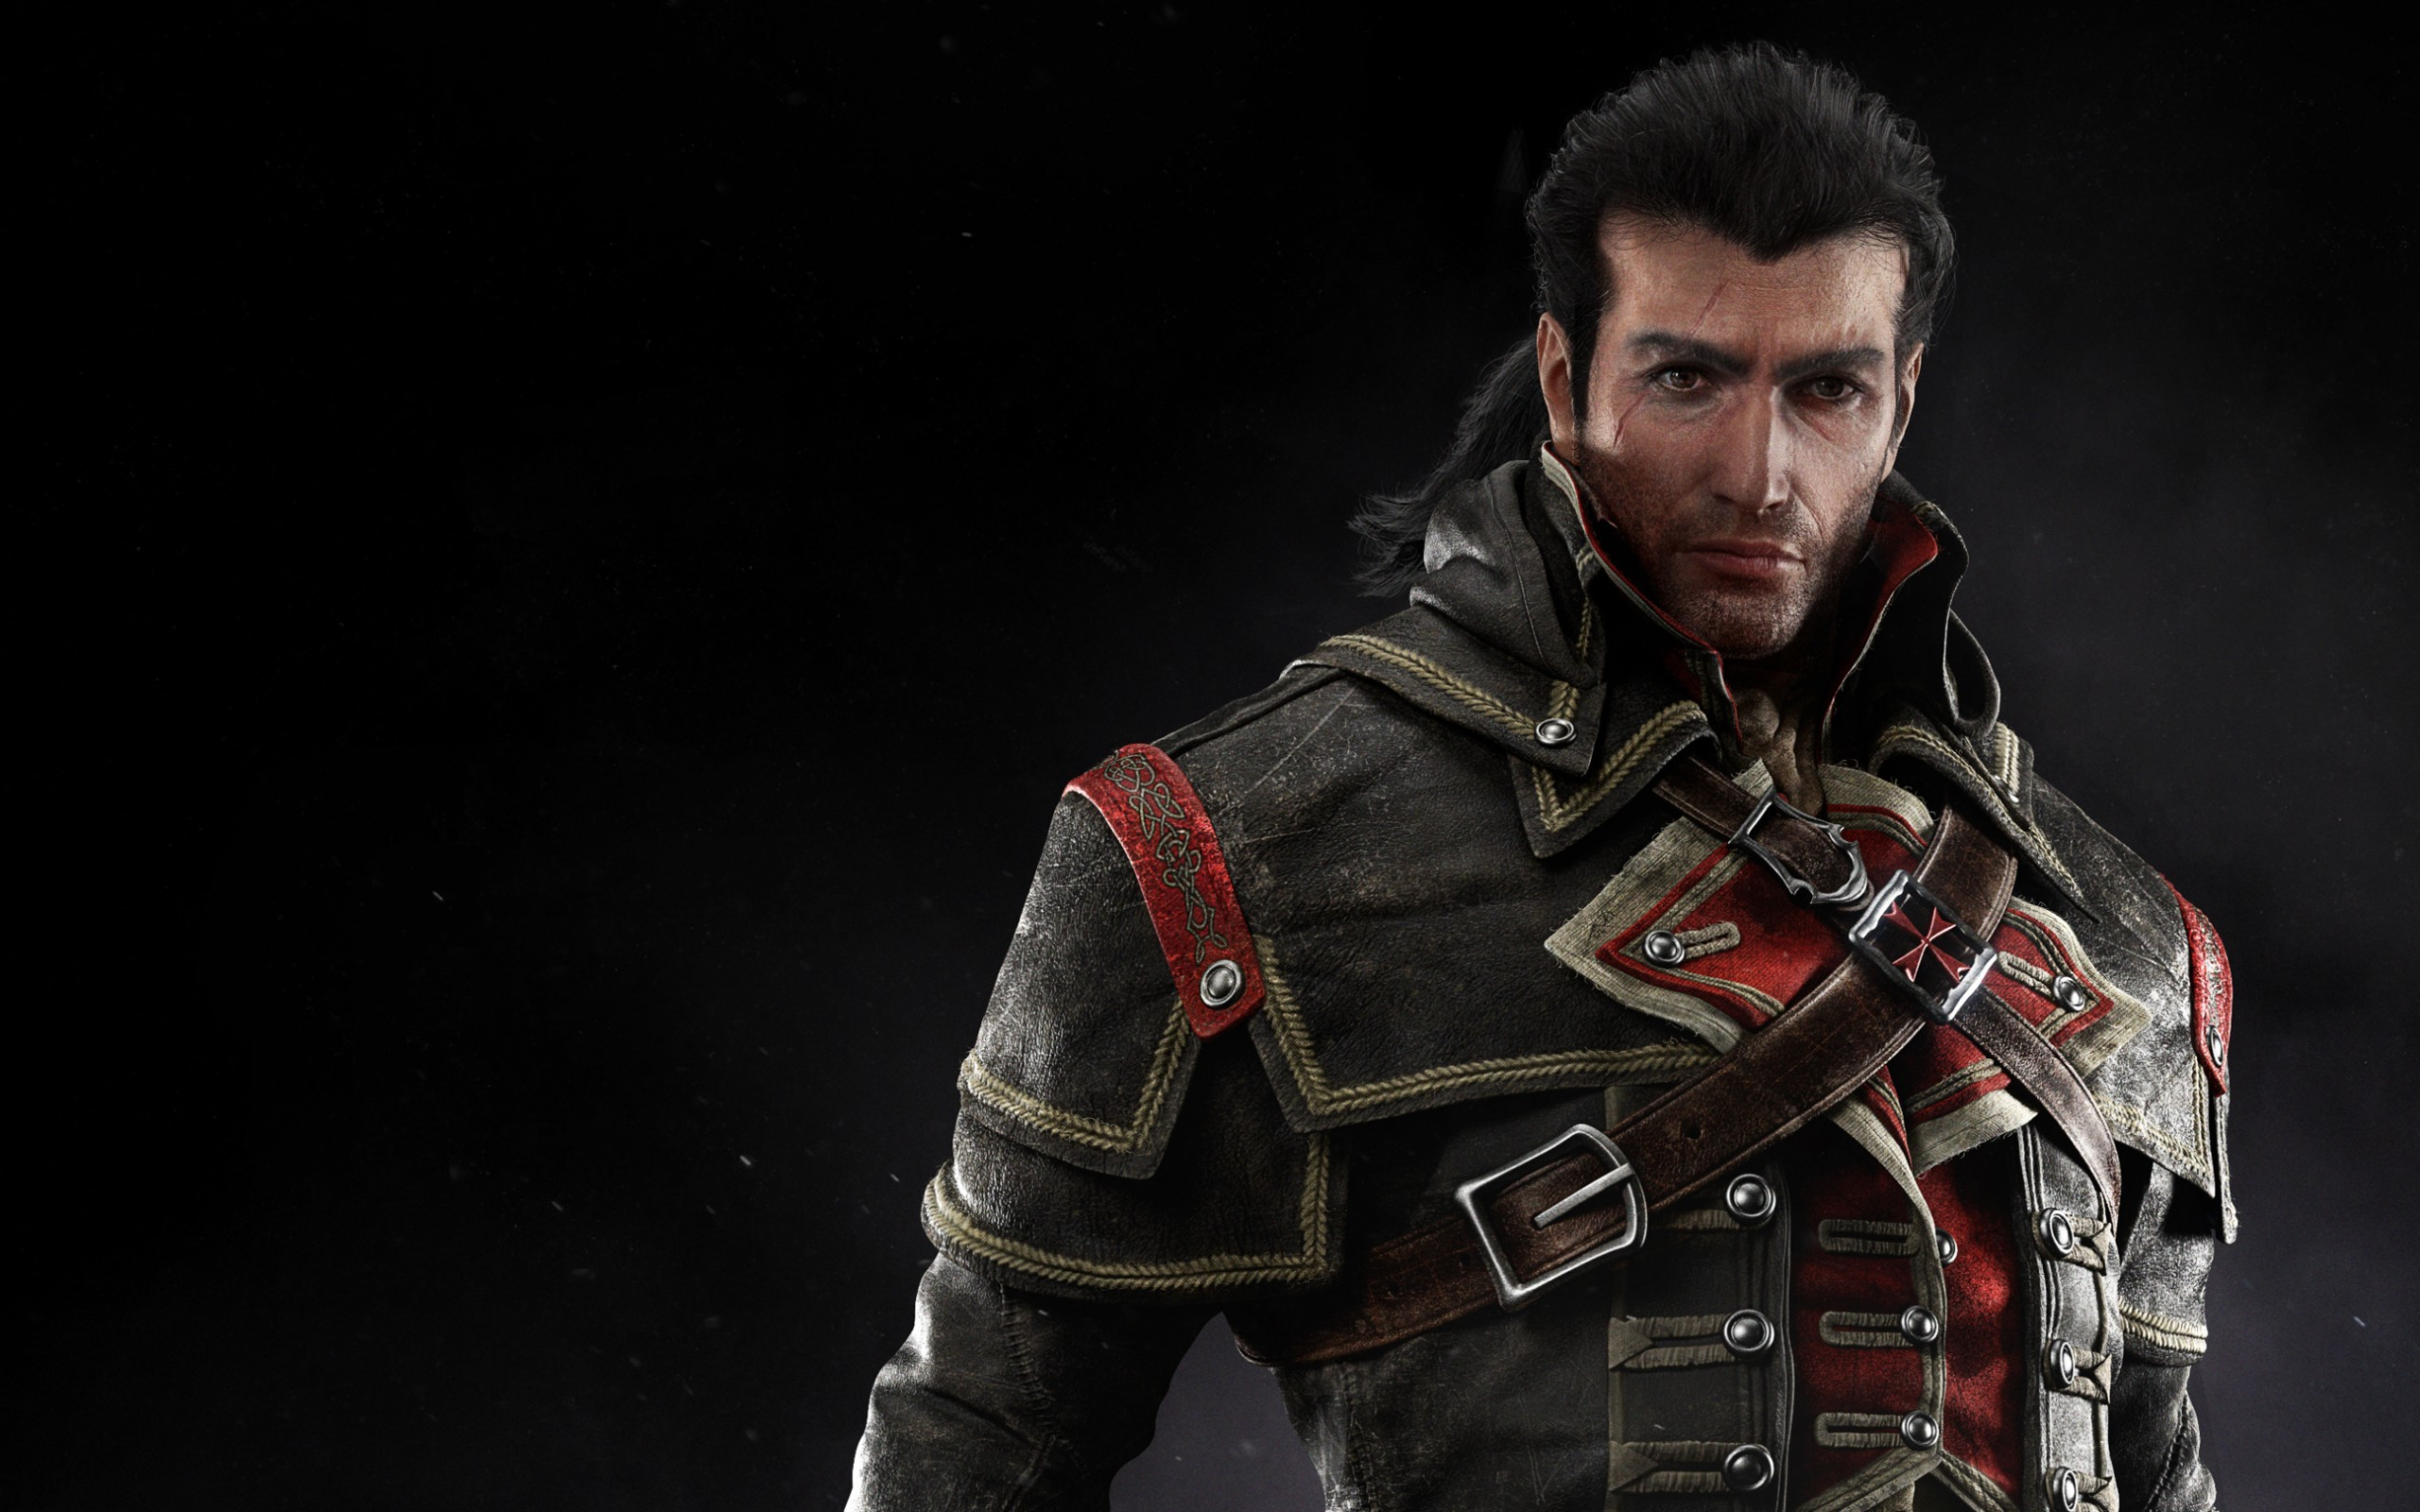 Assassin's Creed Rogue Wallpaper 2014 Video Game Character Shay Cormac. Â«